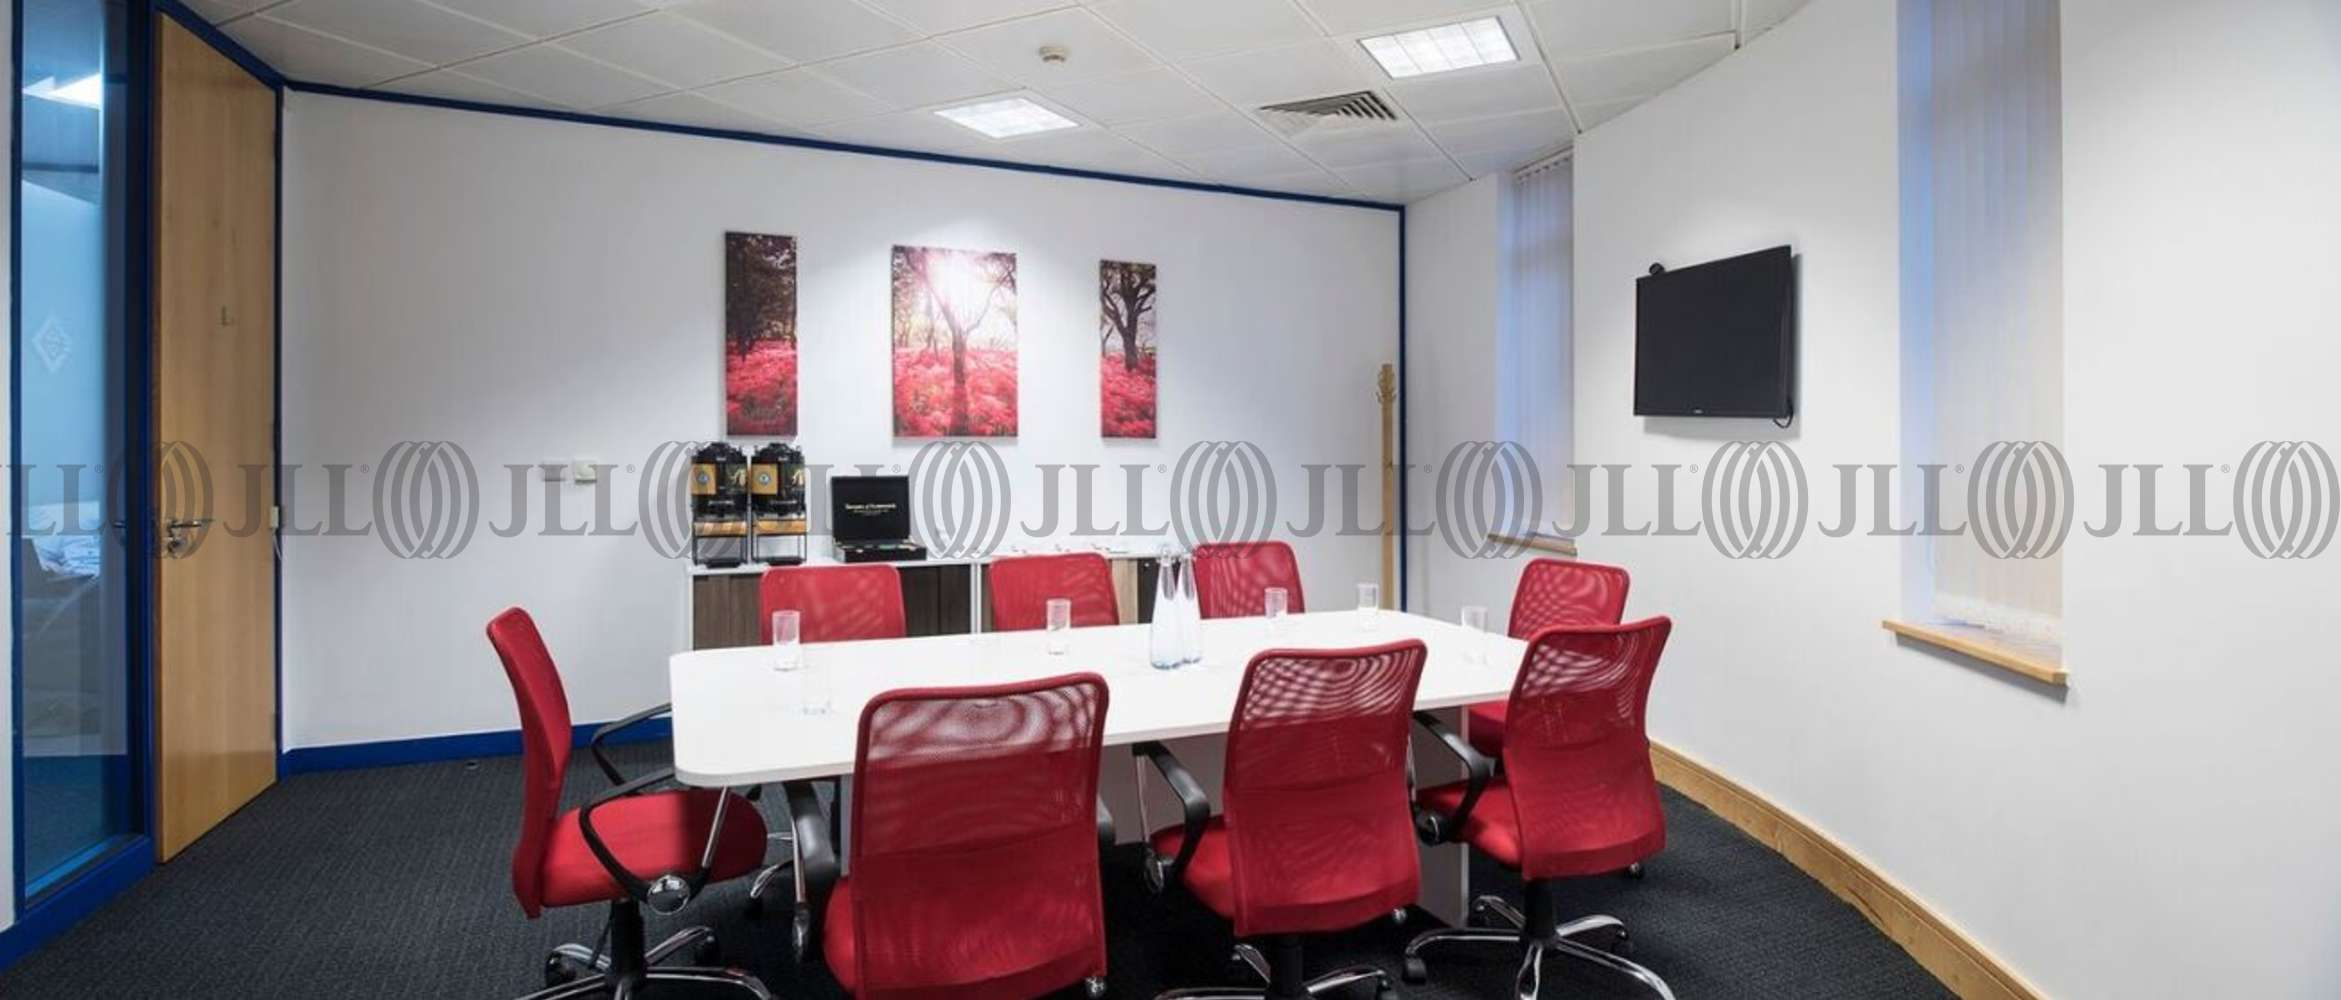 Office Staines, TW18 4AX - Centurion House - 2